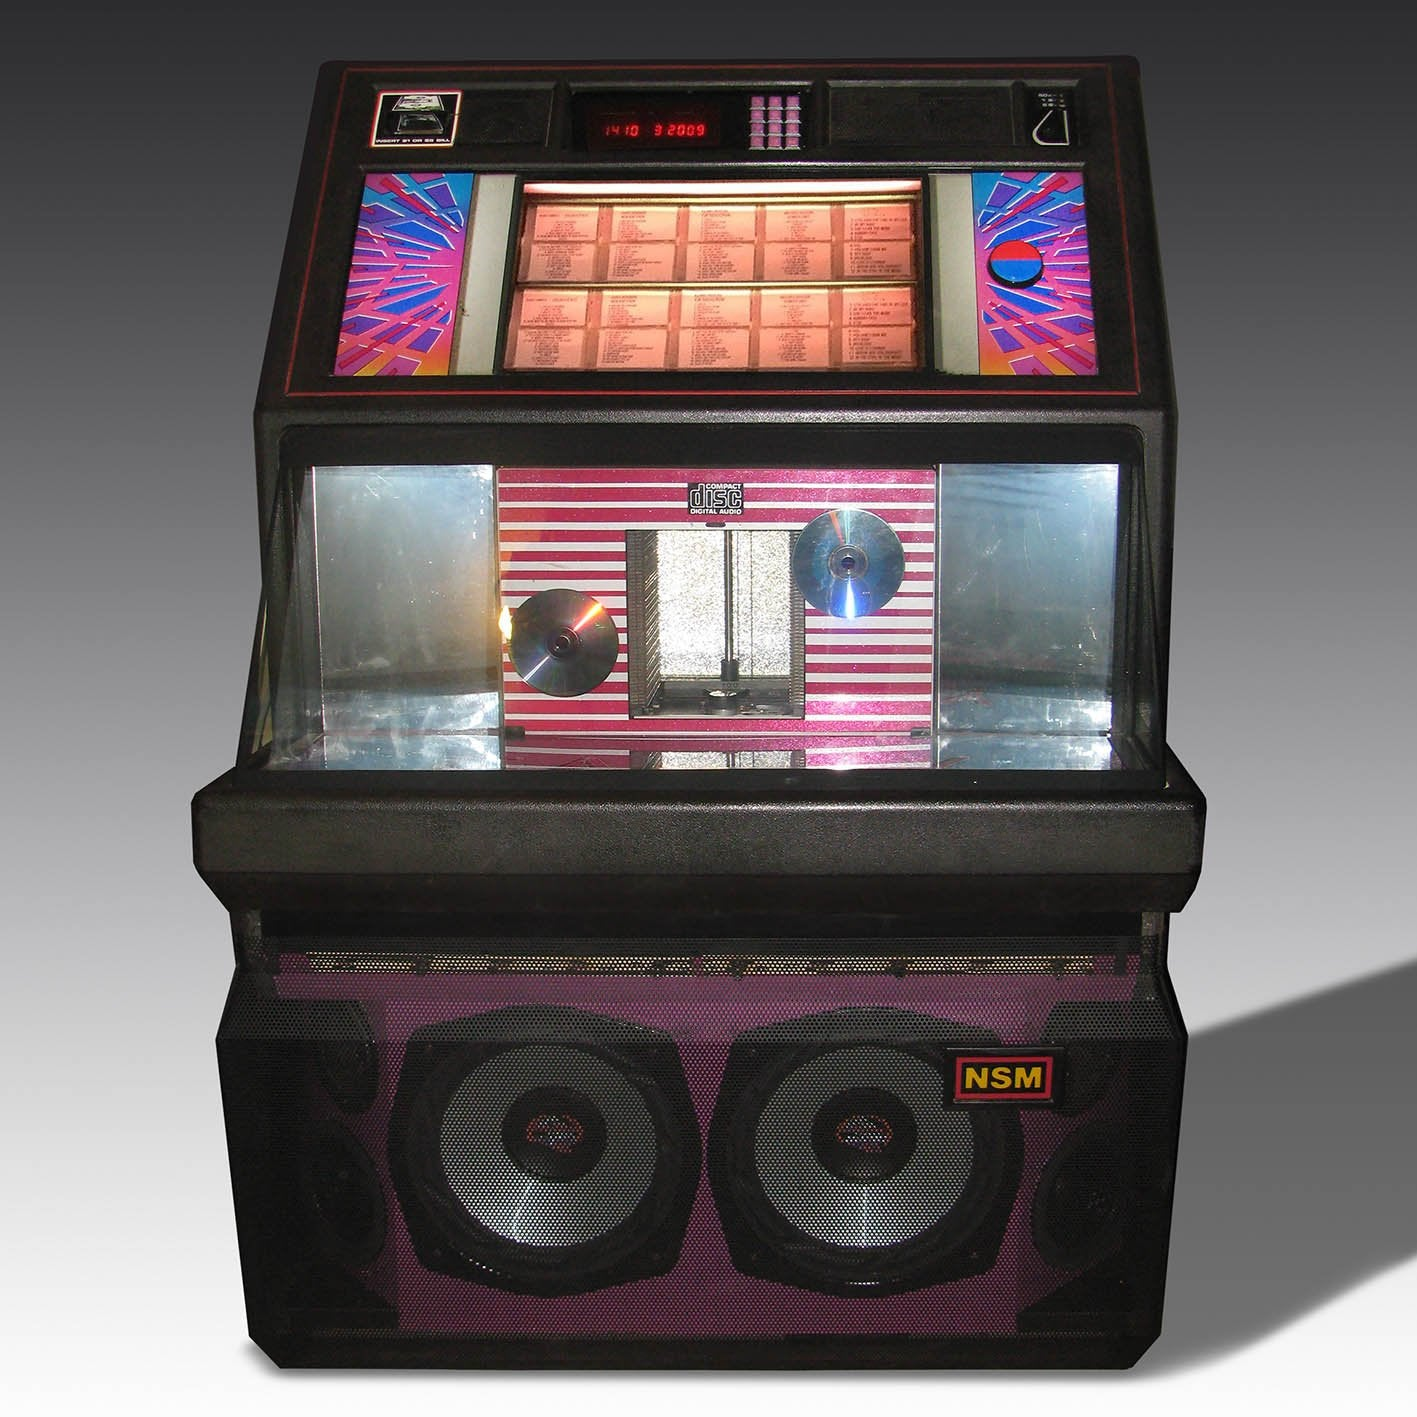 NSM Galaxy jukebox